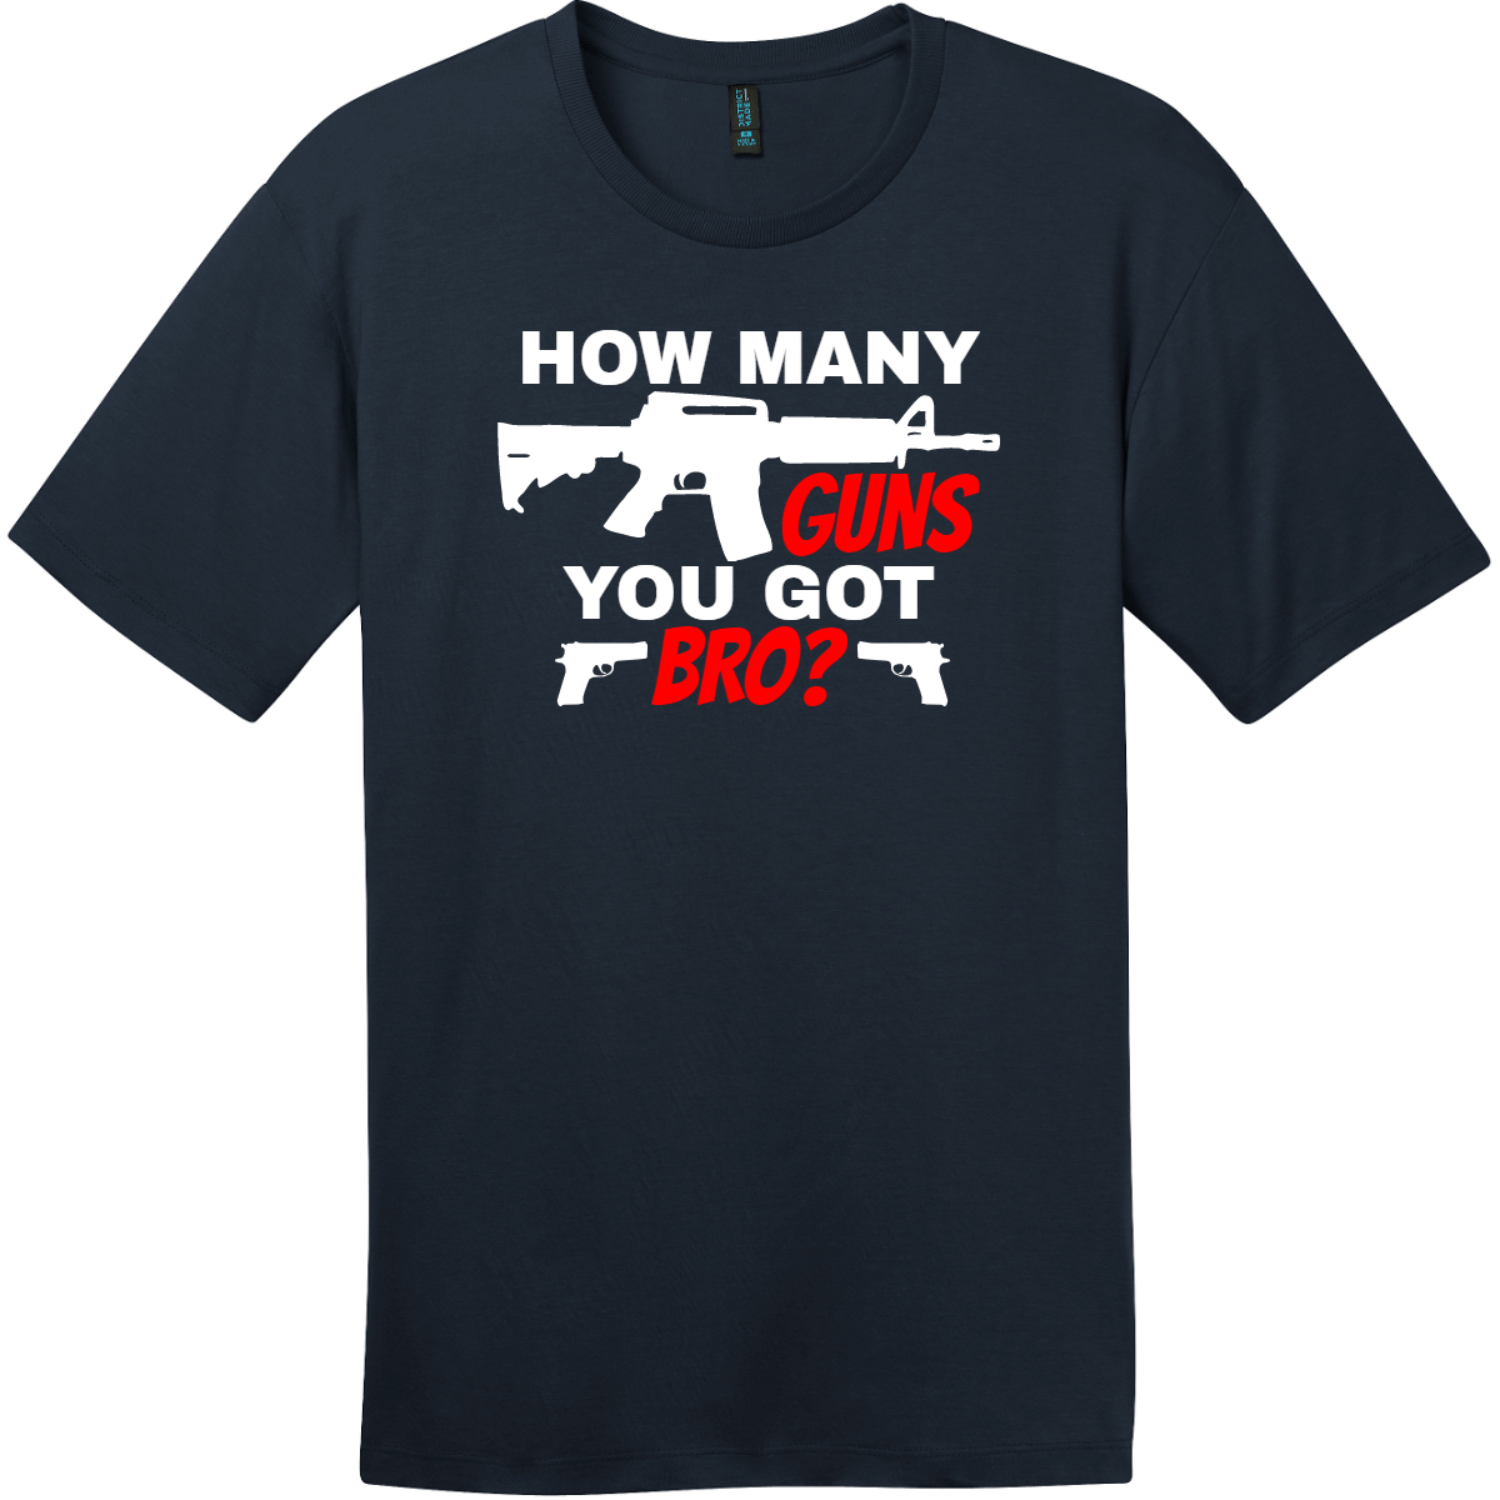 How Many Guns You Got Bro T-Shirt New Navy District Perfect Weight Tee DT104